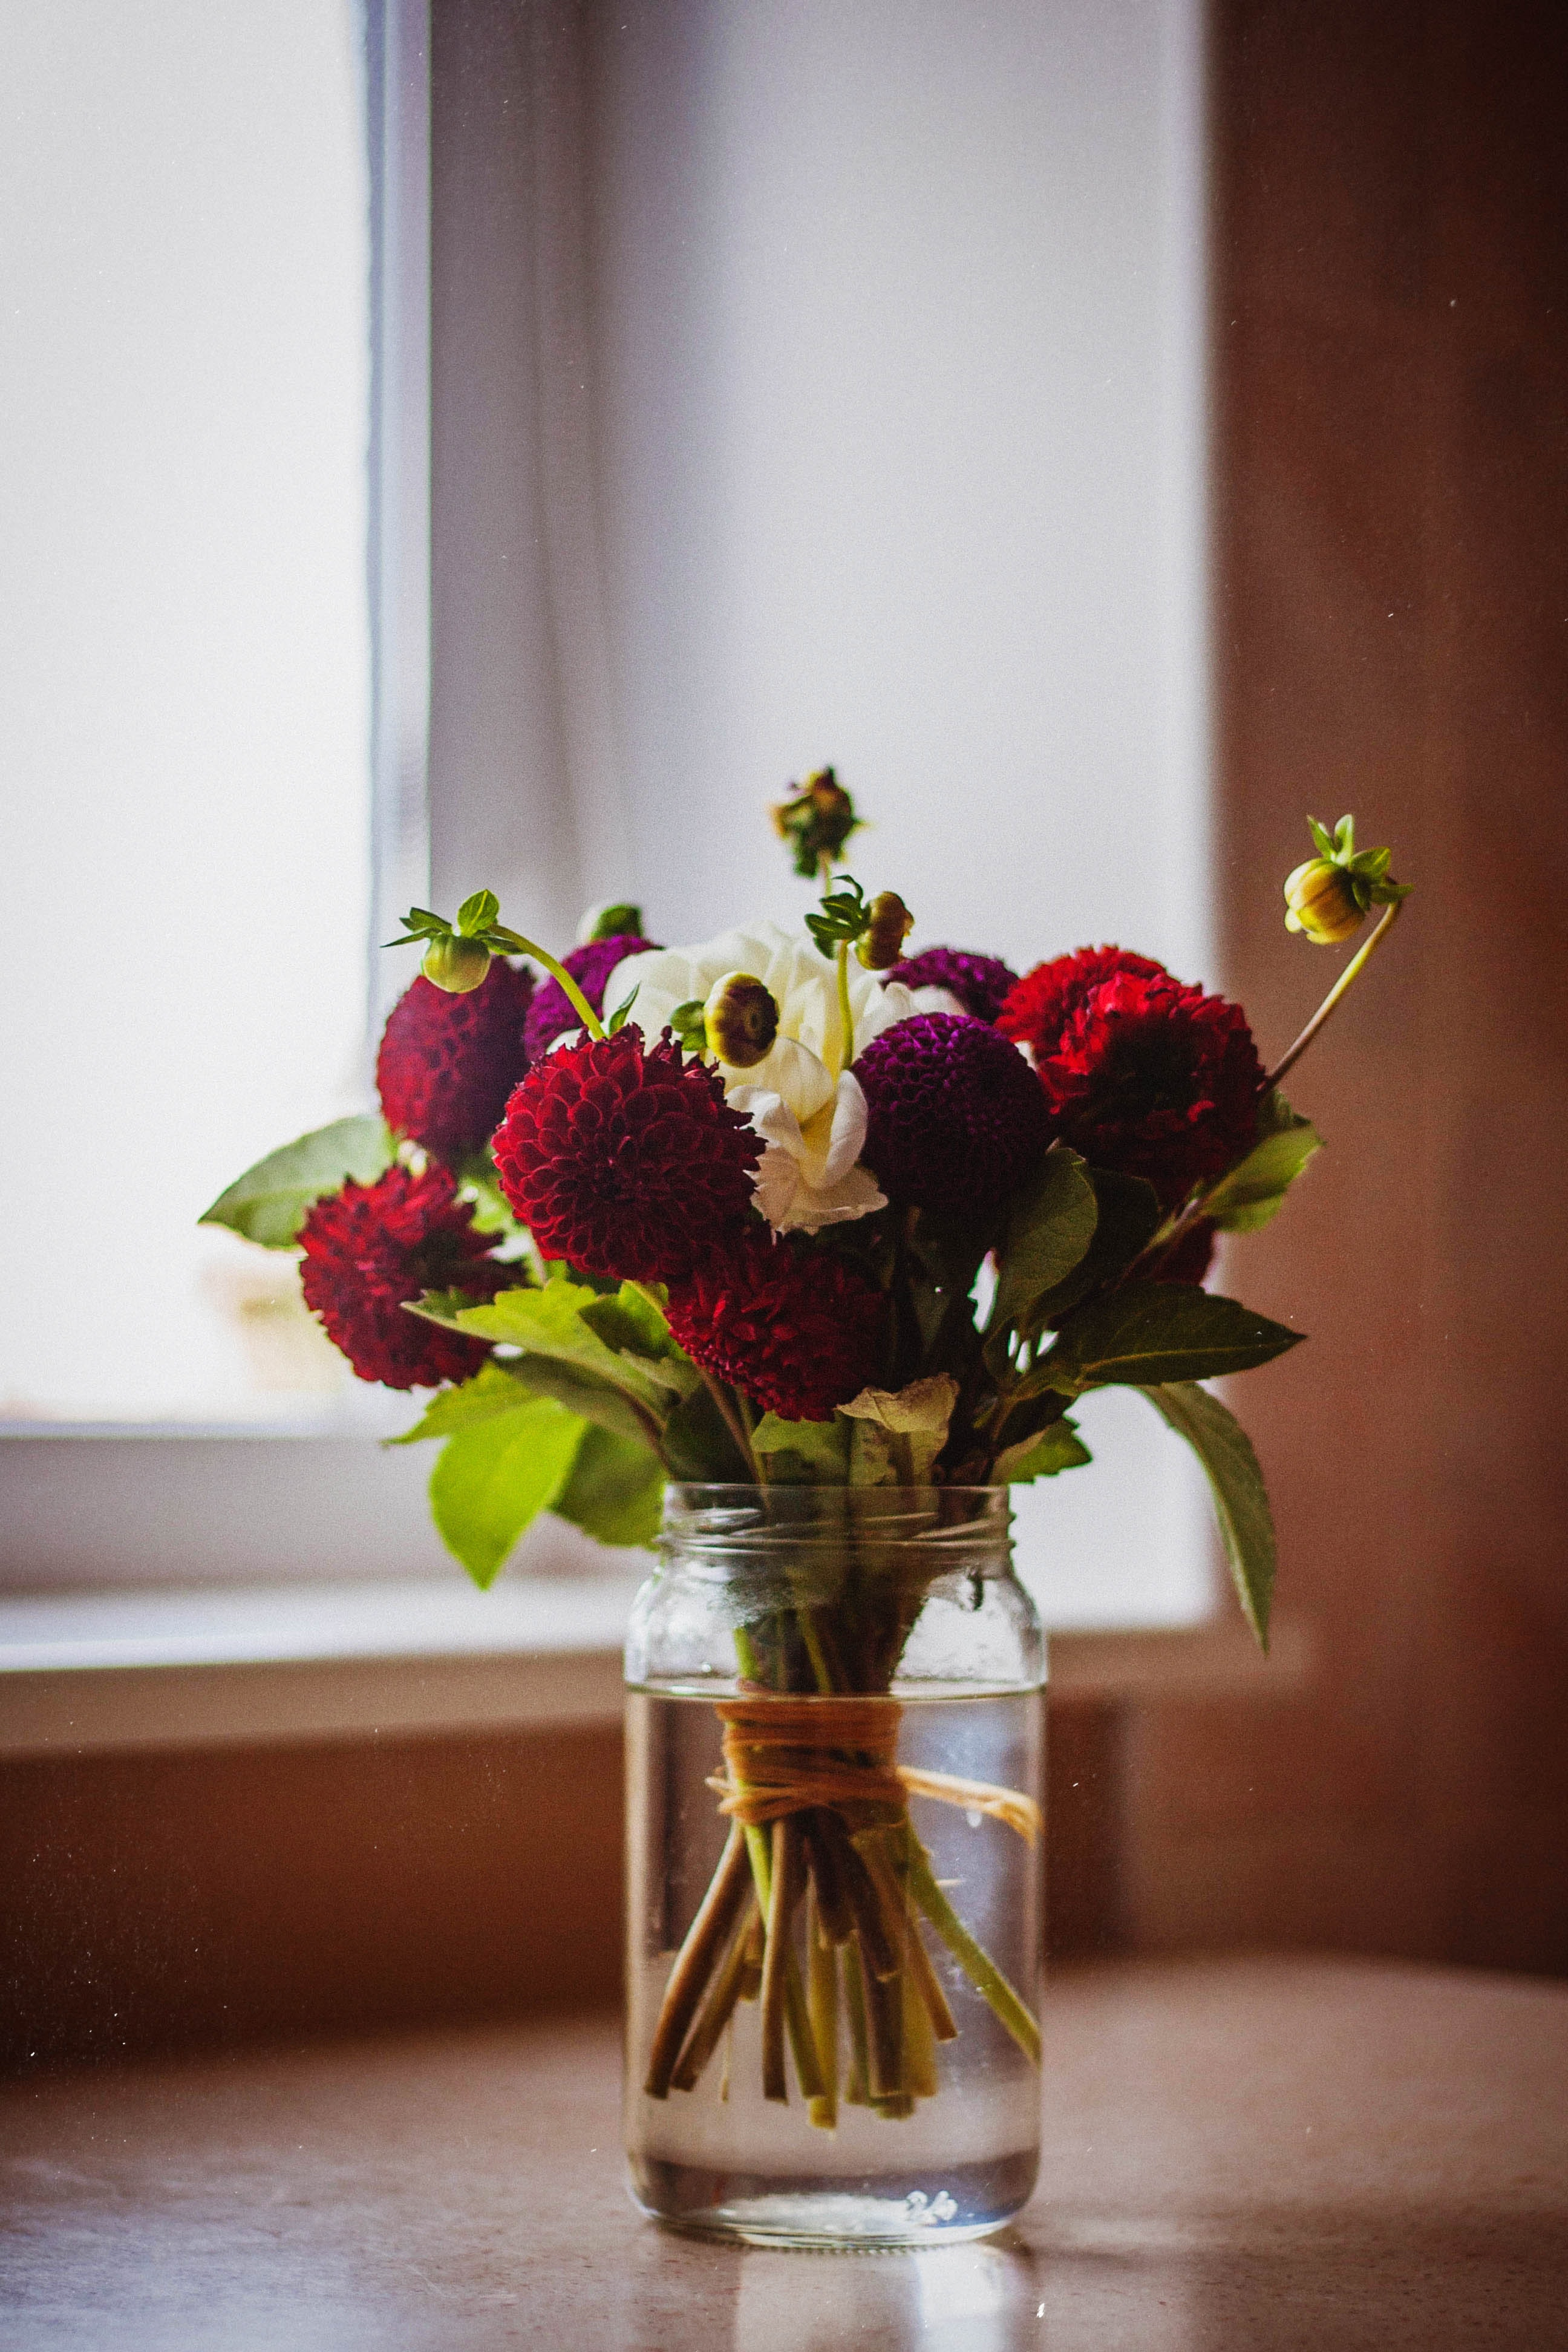 Close Up Photography Flowers In A Vase  C2 B7 Free Stock Photo